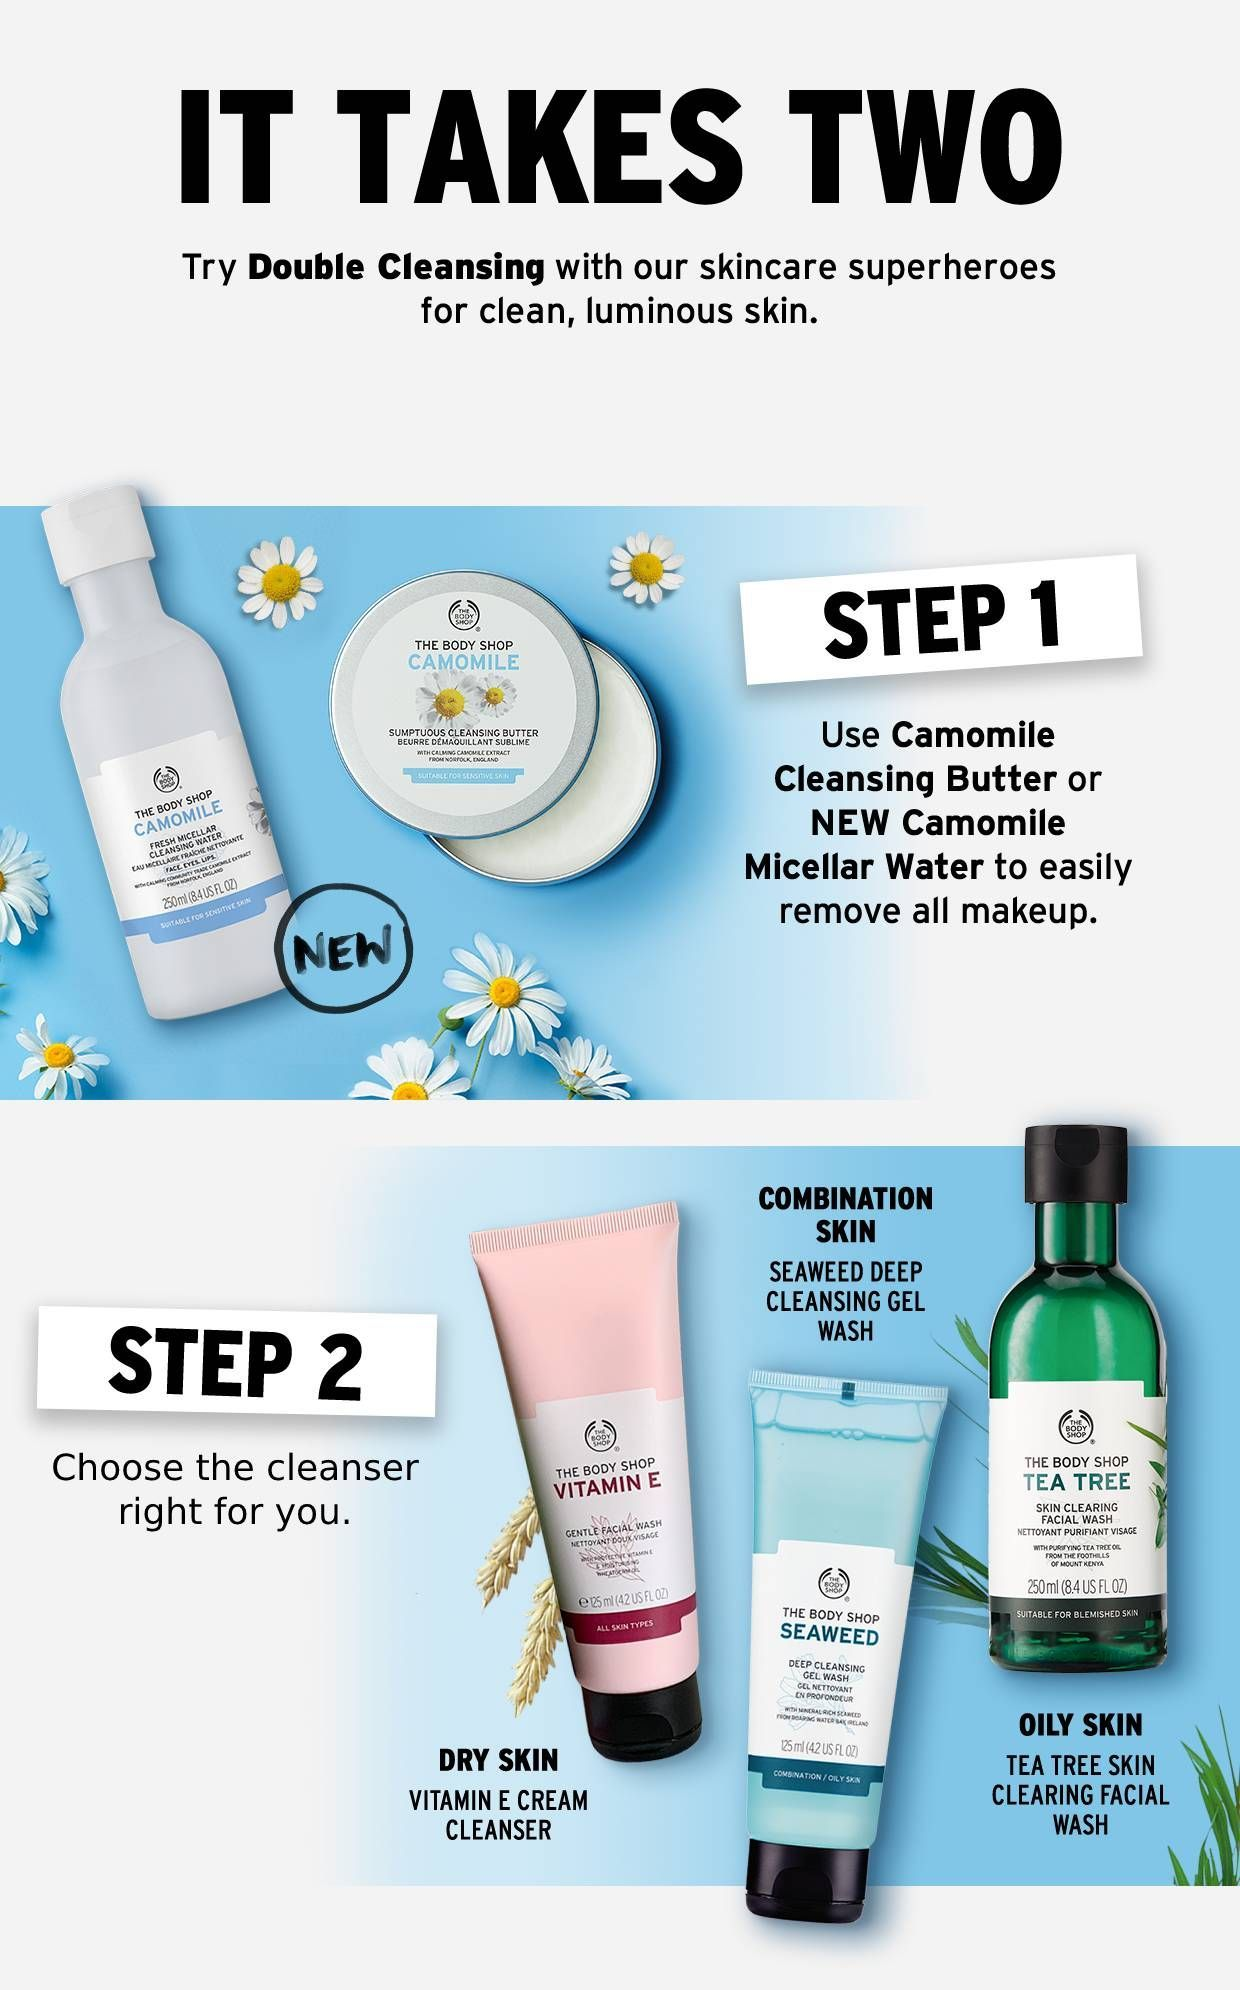 Double cleansing is essential for your daily skincare routine! Find out more about this 2 step process and which cleanser is right for you. #SkinCareTipsForBlackheads #skincareroutine